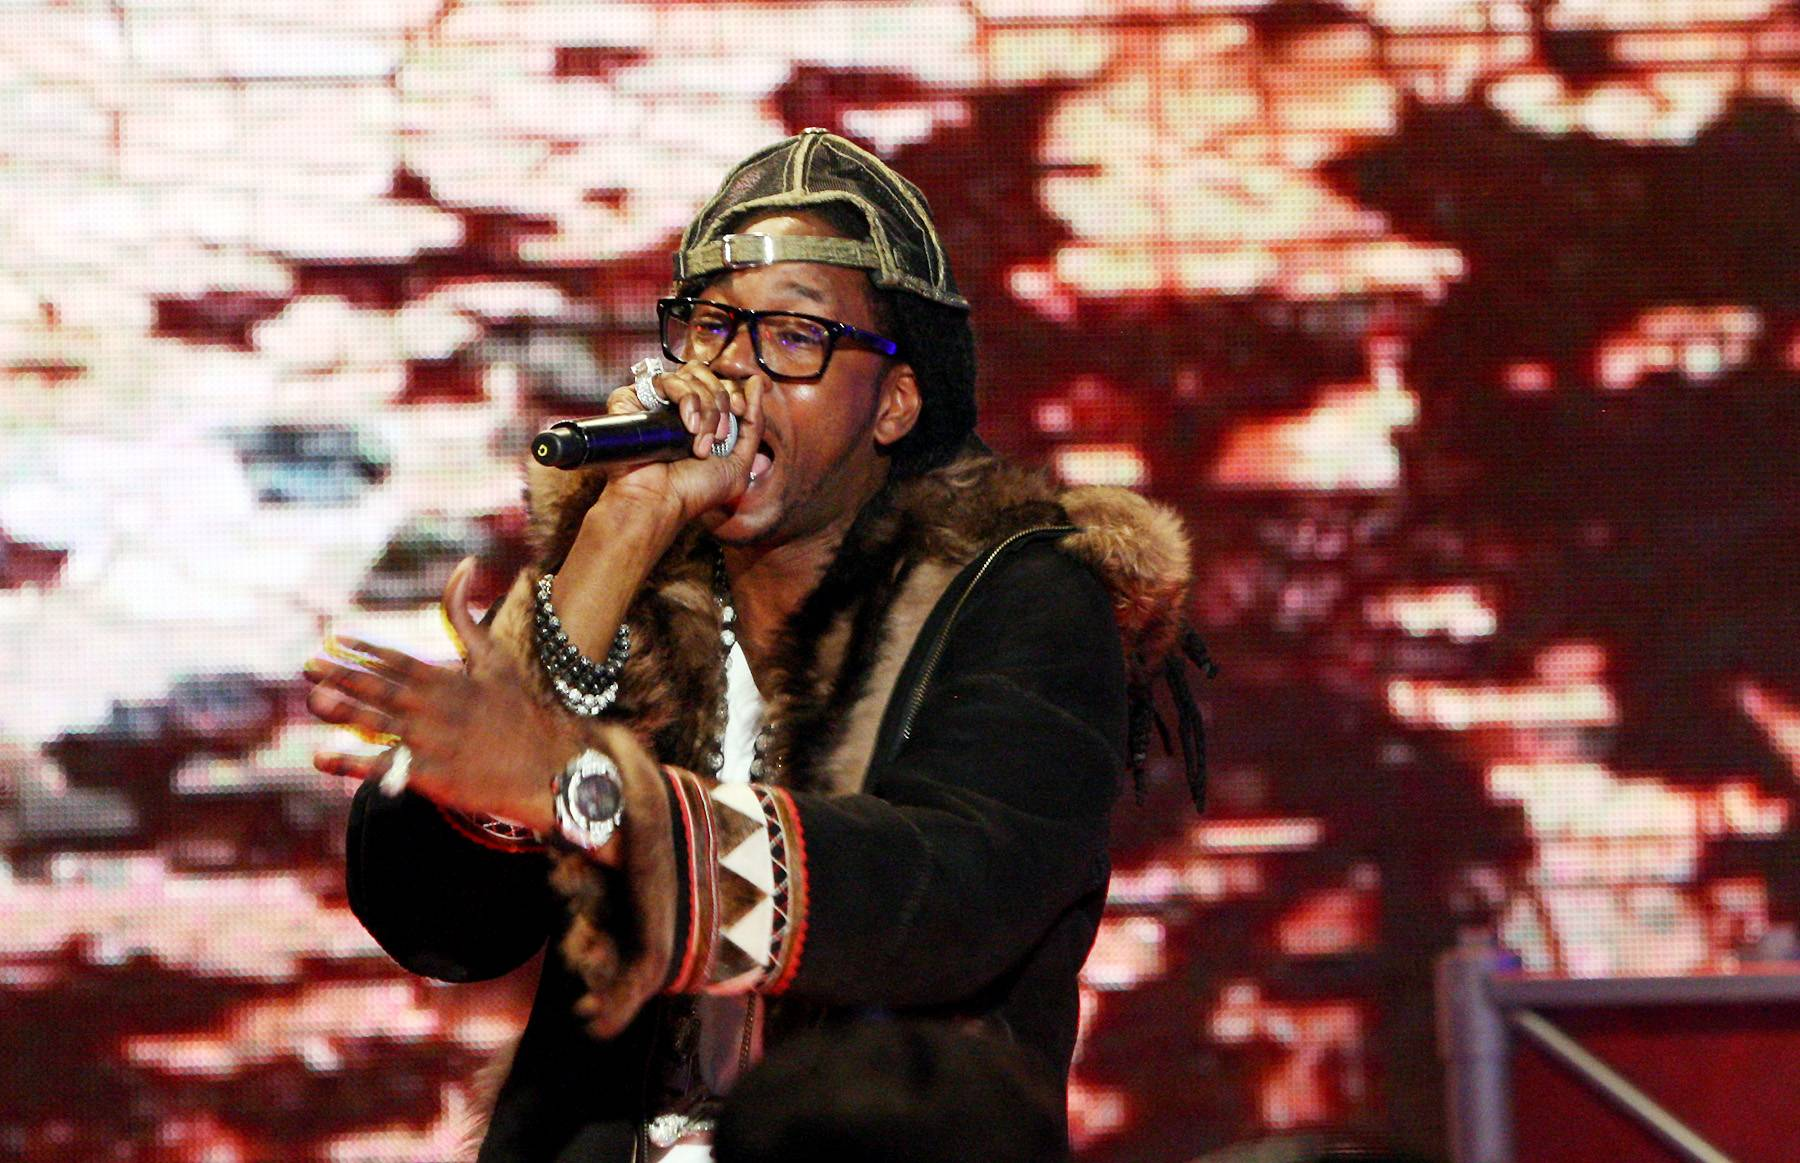 """2 Chainz - 2 Chainz, formerly Tity Boi of Playaz Circle, who had a Weezy-featuring hit in 2007 with """"Duffle Bag Boy,"""" capitalized off his metoric mixtape success by officially leaving Ludacris' Disturbing Tha Peace imprint and inking a new deal with Def Jam.(Photo: Bennett Raglin/Getty Images)"""